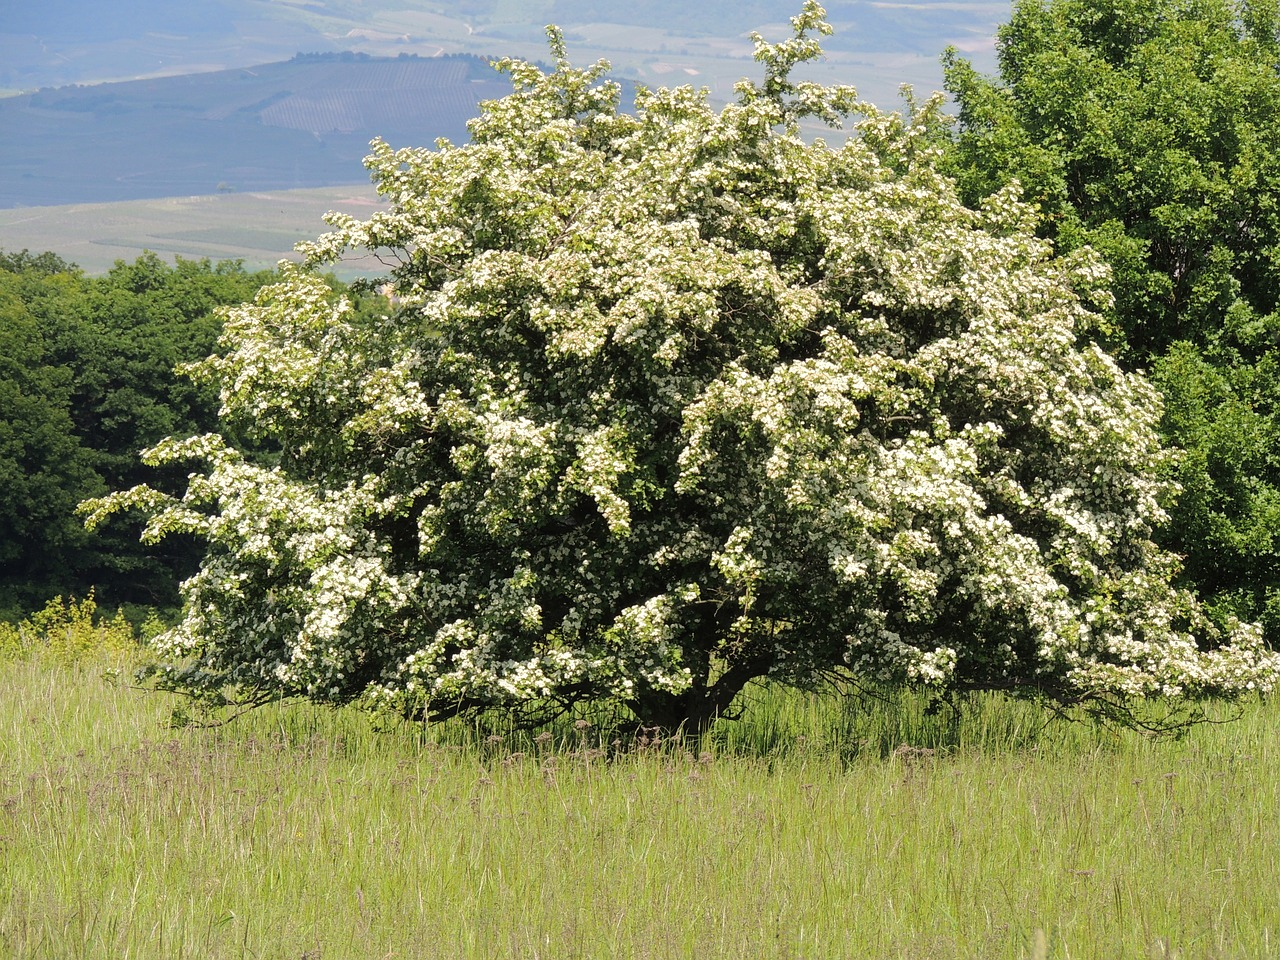 A flowering hawthorn tree in spring is a spectacular sight. The white flowers are fragrant. This native tree is easy to grow, tolerating a variety of soils and conditions. Best in full sun, but performs in partial shade.